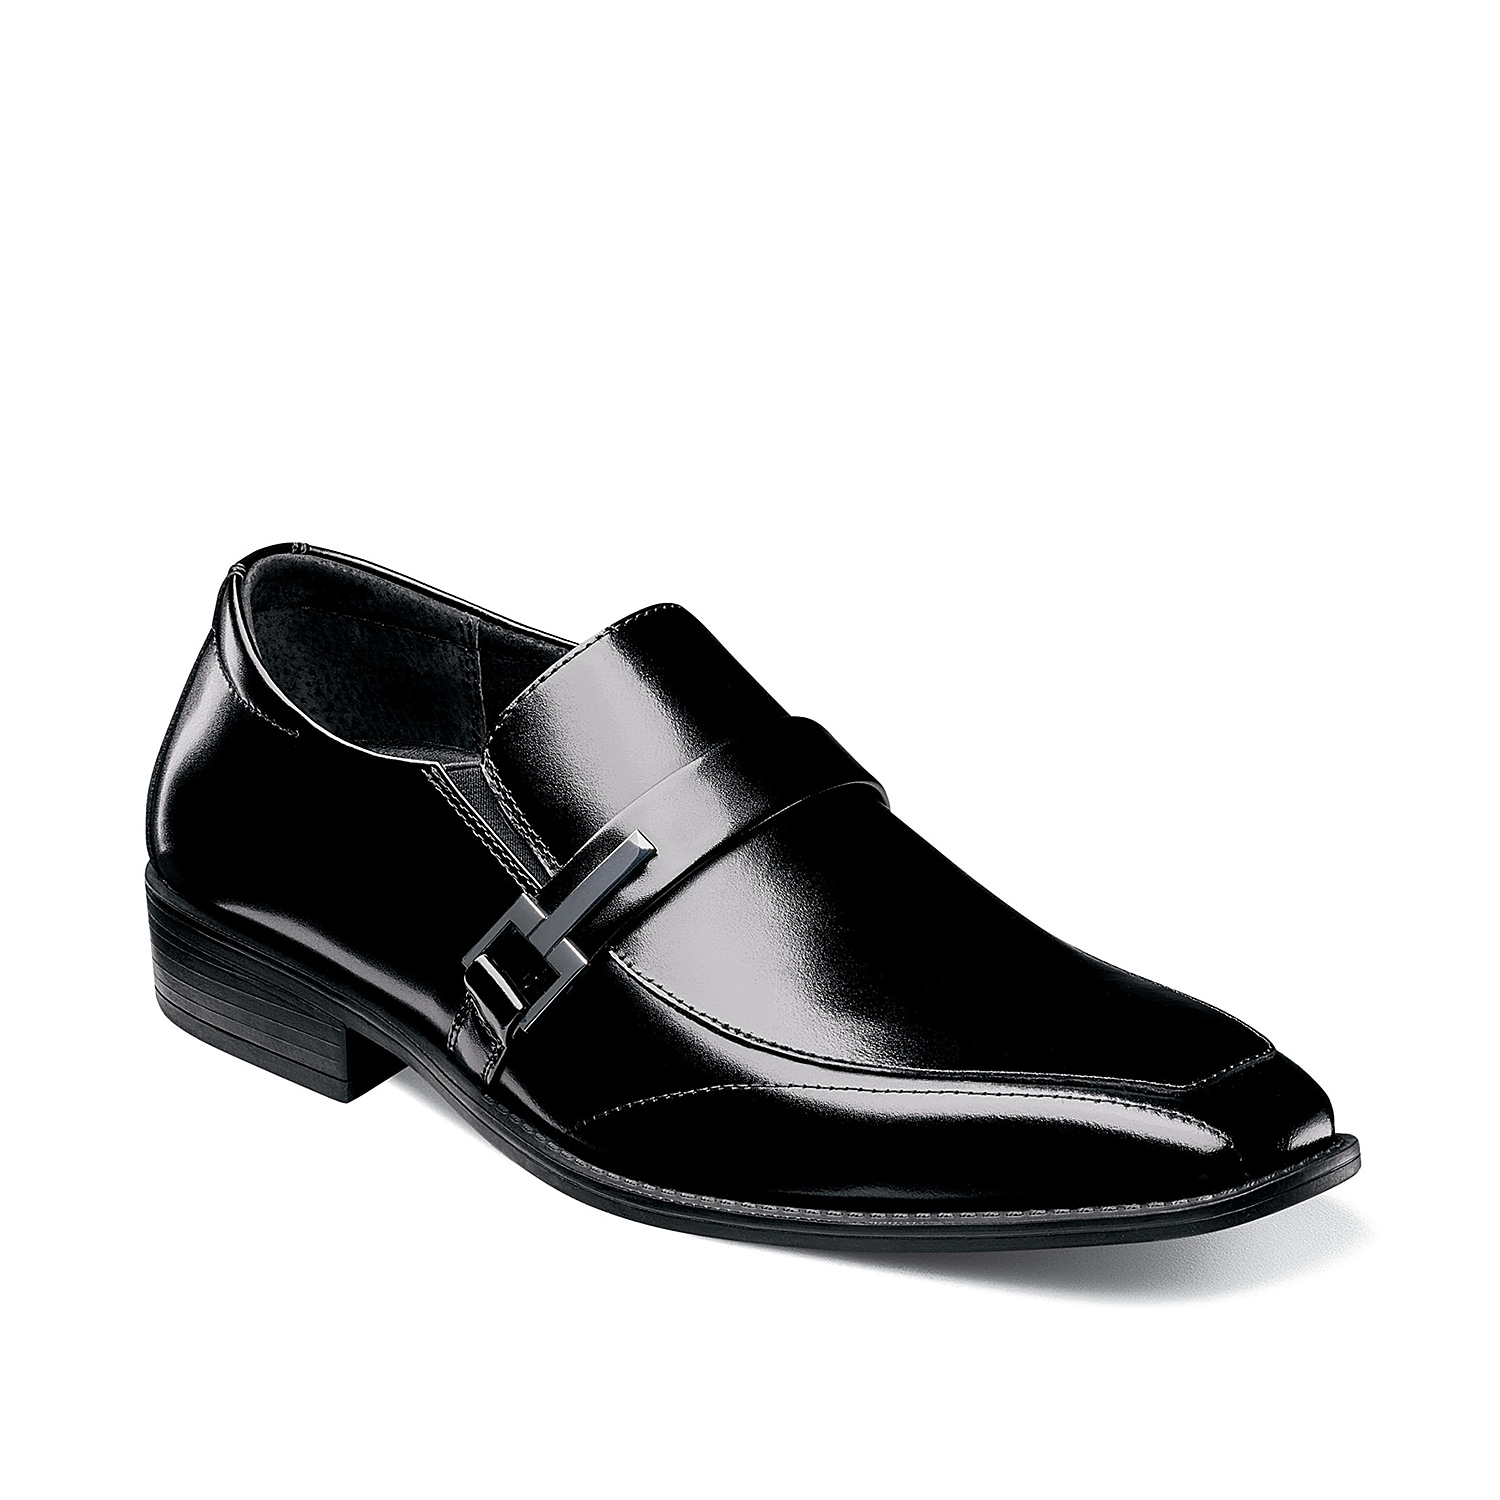 Freshen up your weekday wardrobe with the Abram loafer from Stacy Adams. This slip-on features smooth leather upper and metal accent for a fresh finishing touch!